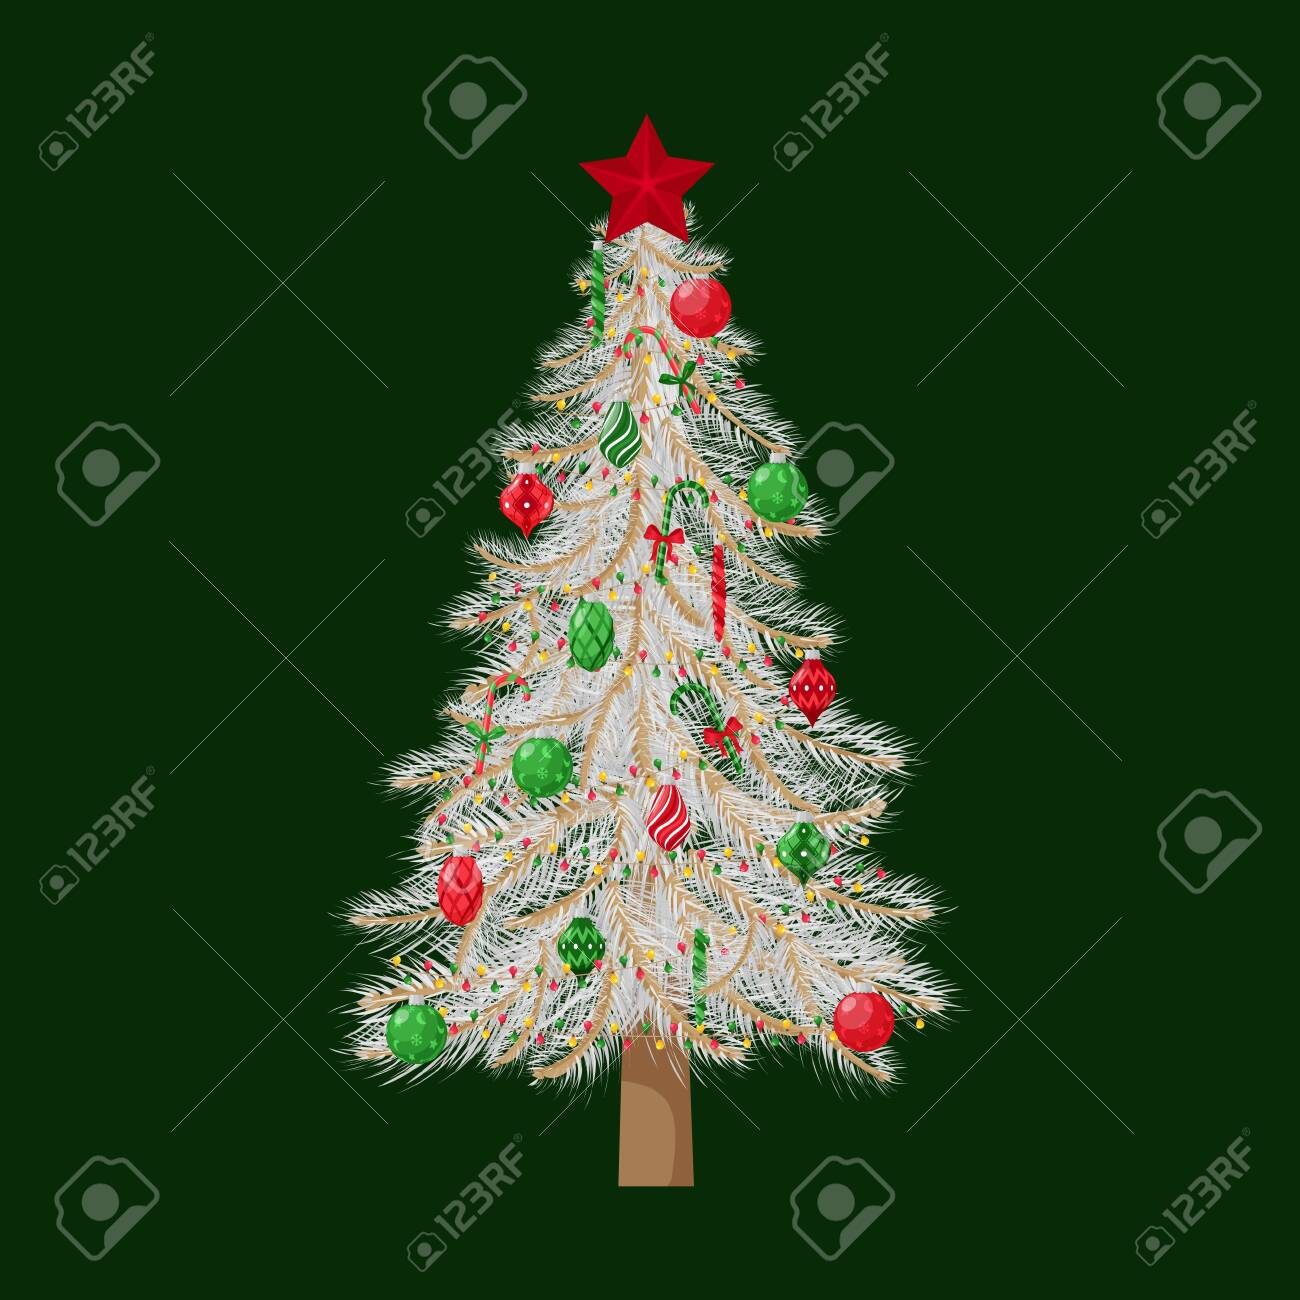 Christmas Tree With White Branches Decorated With Christmas Royalty Free Cliparts Vectors And Stock Illustration Image 157189028